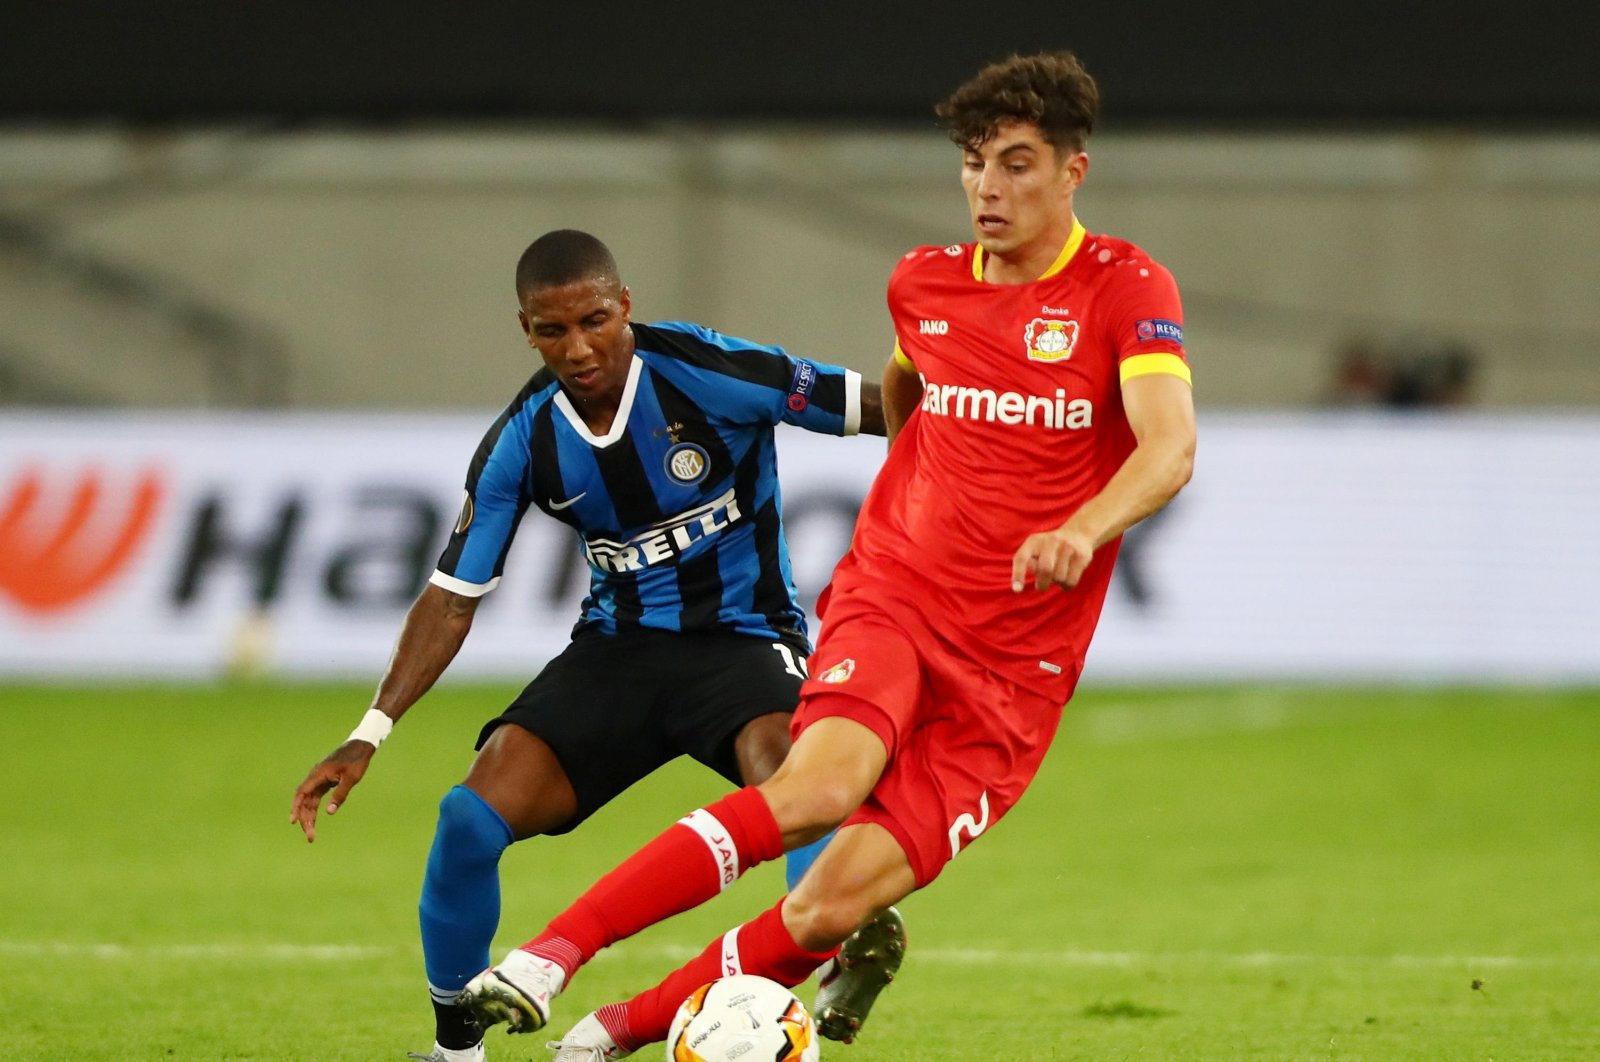 Kai Havertz (R) became the summer season's most expensive transfer after Chelsea agreed to pay a reported fee of 62 million pounds for his move. (Reuters Photo)